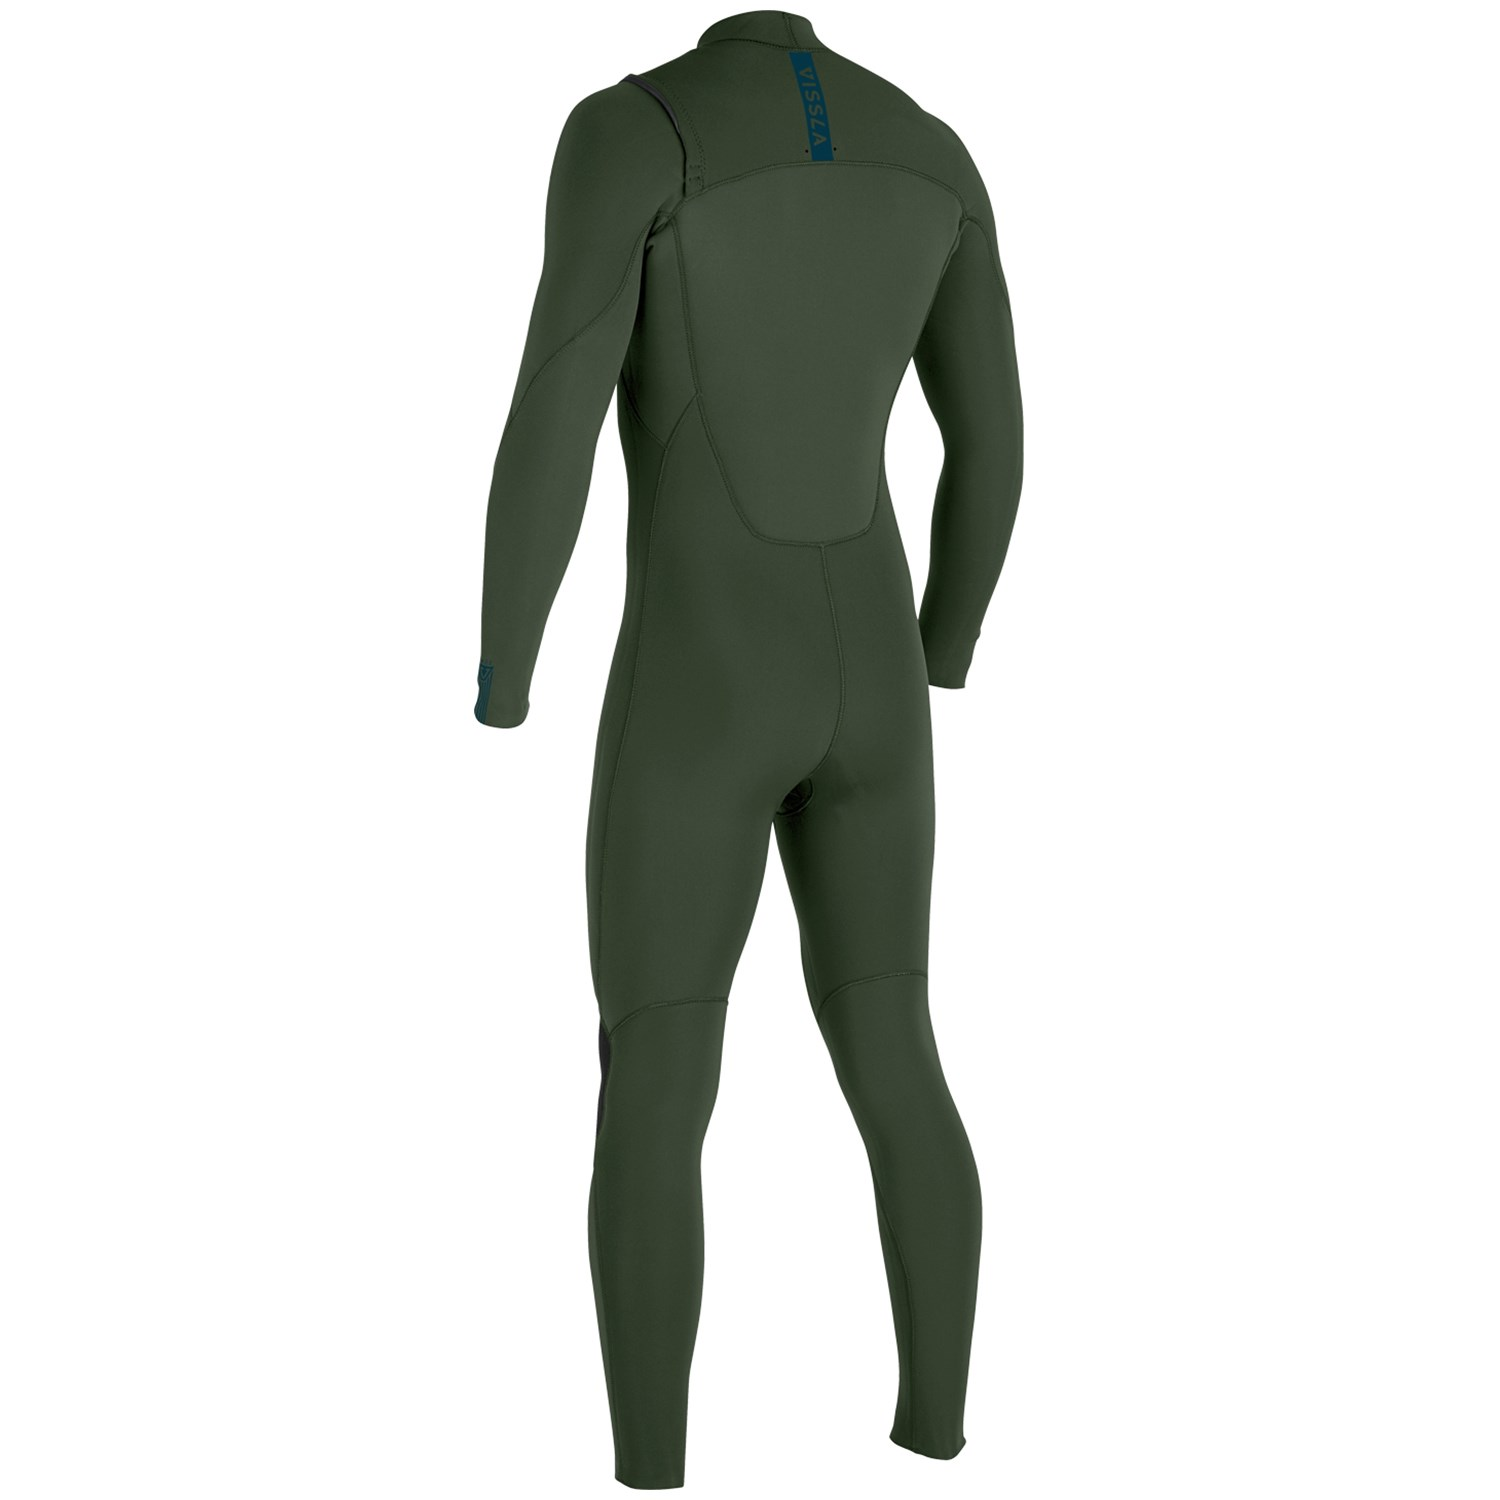 b8f3256df3 Vissla 7 Seas 4/3 Chest Zip Wetsuit